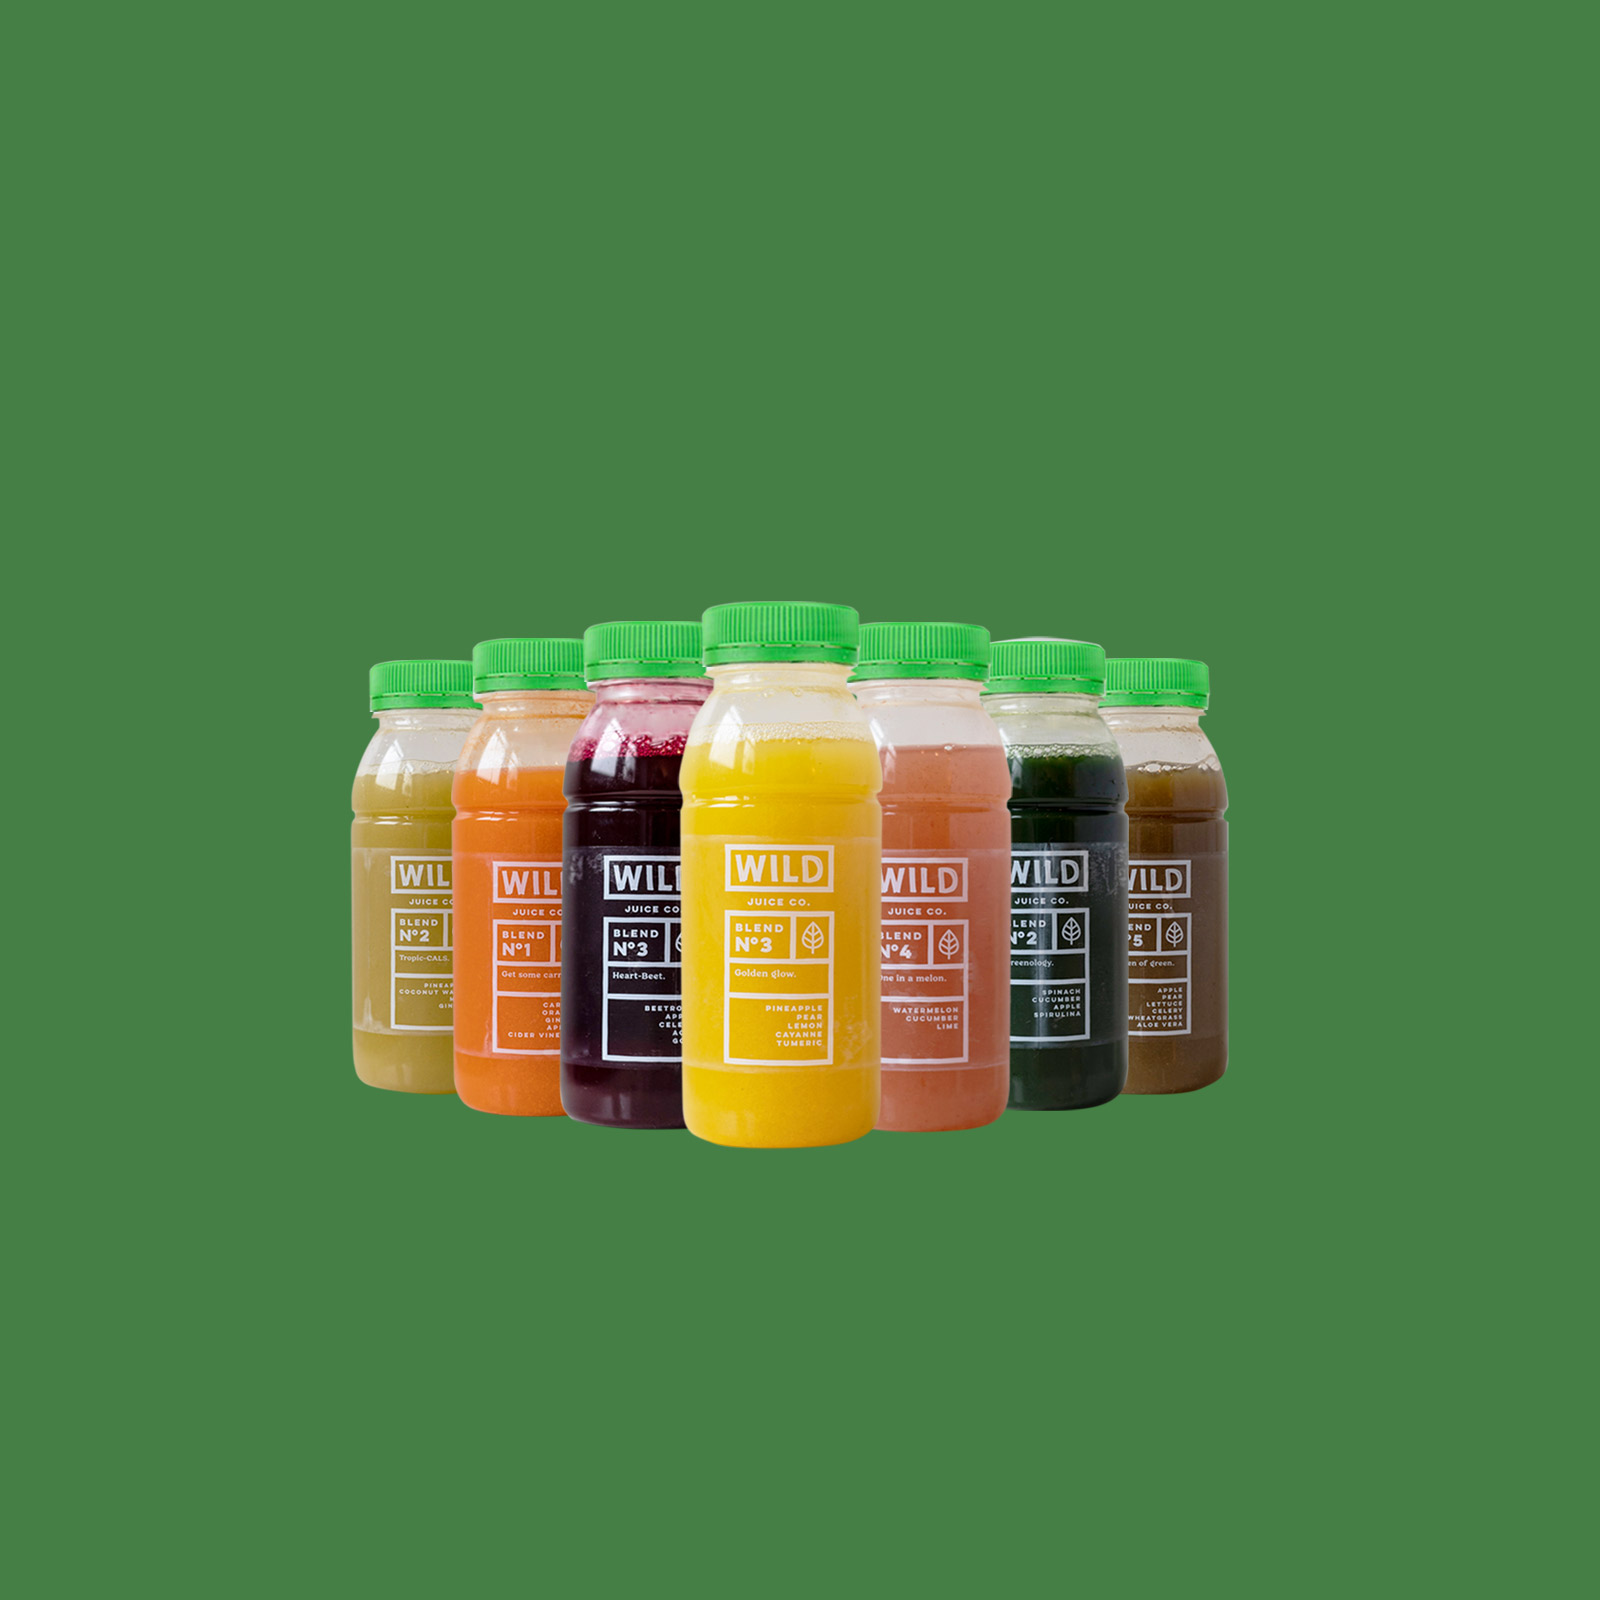 CBD oil infused juices for Wild Juice Co bottles.